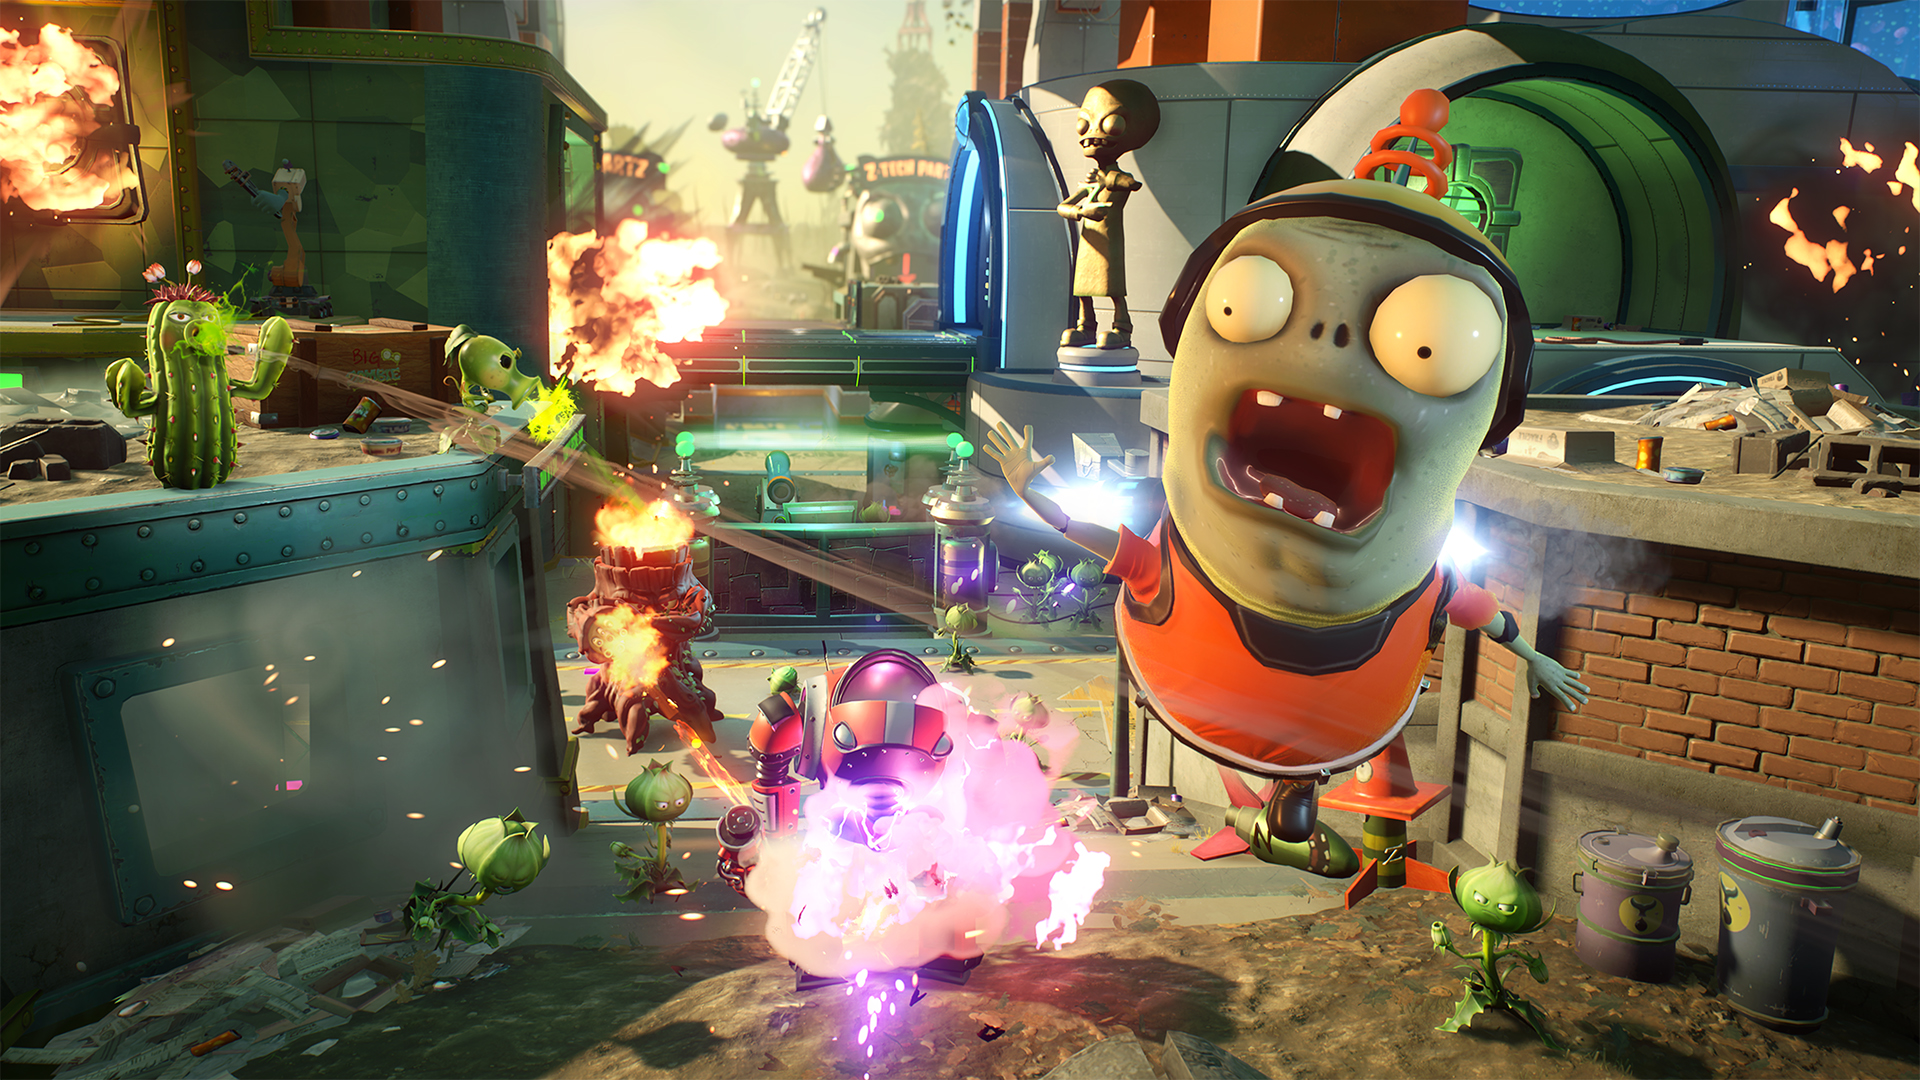 Plants Vs Zombies Garden Warfare 2 Xbox One Review More Expansion Than Sequel Usgamer